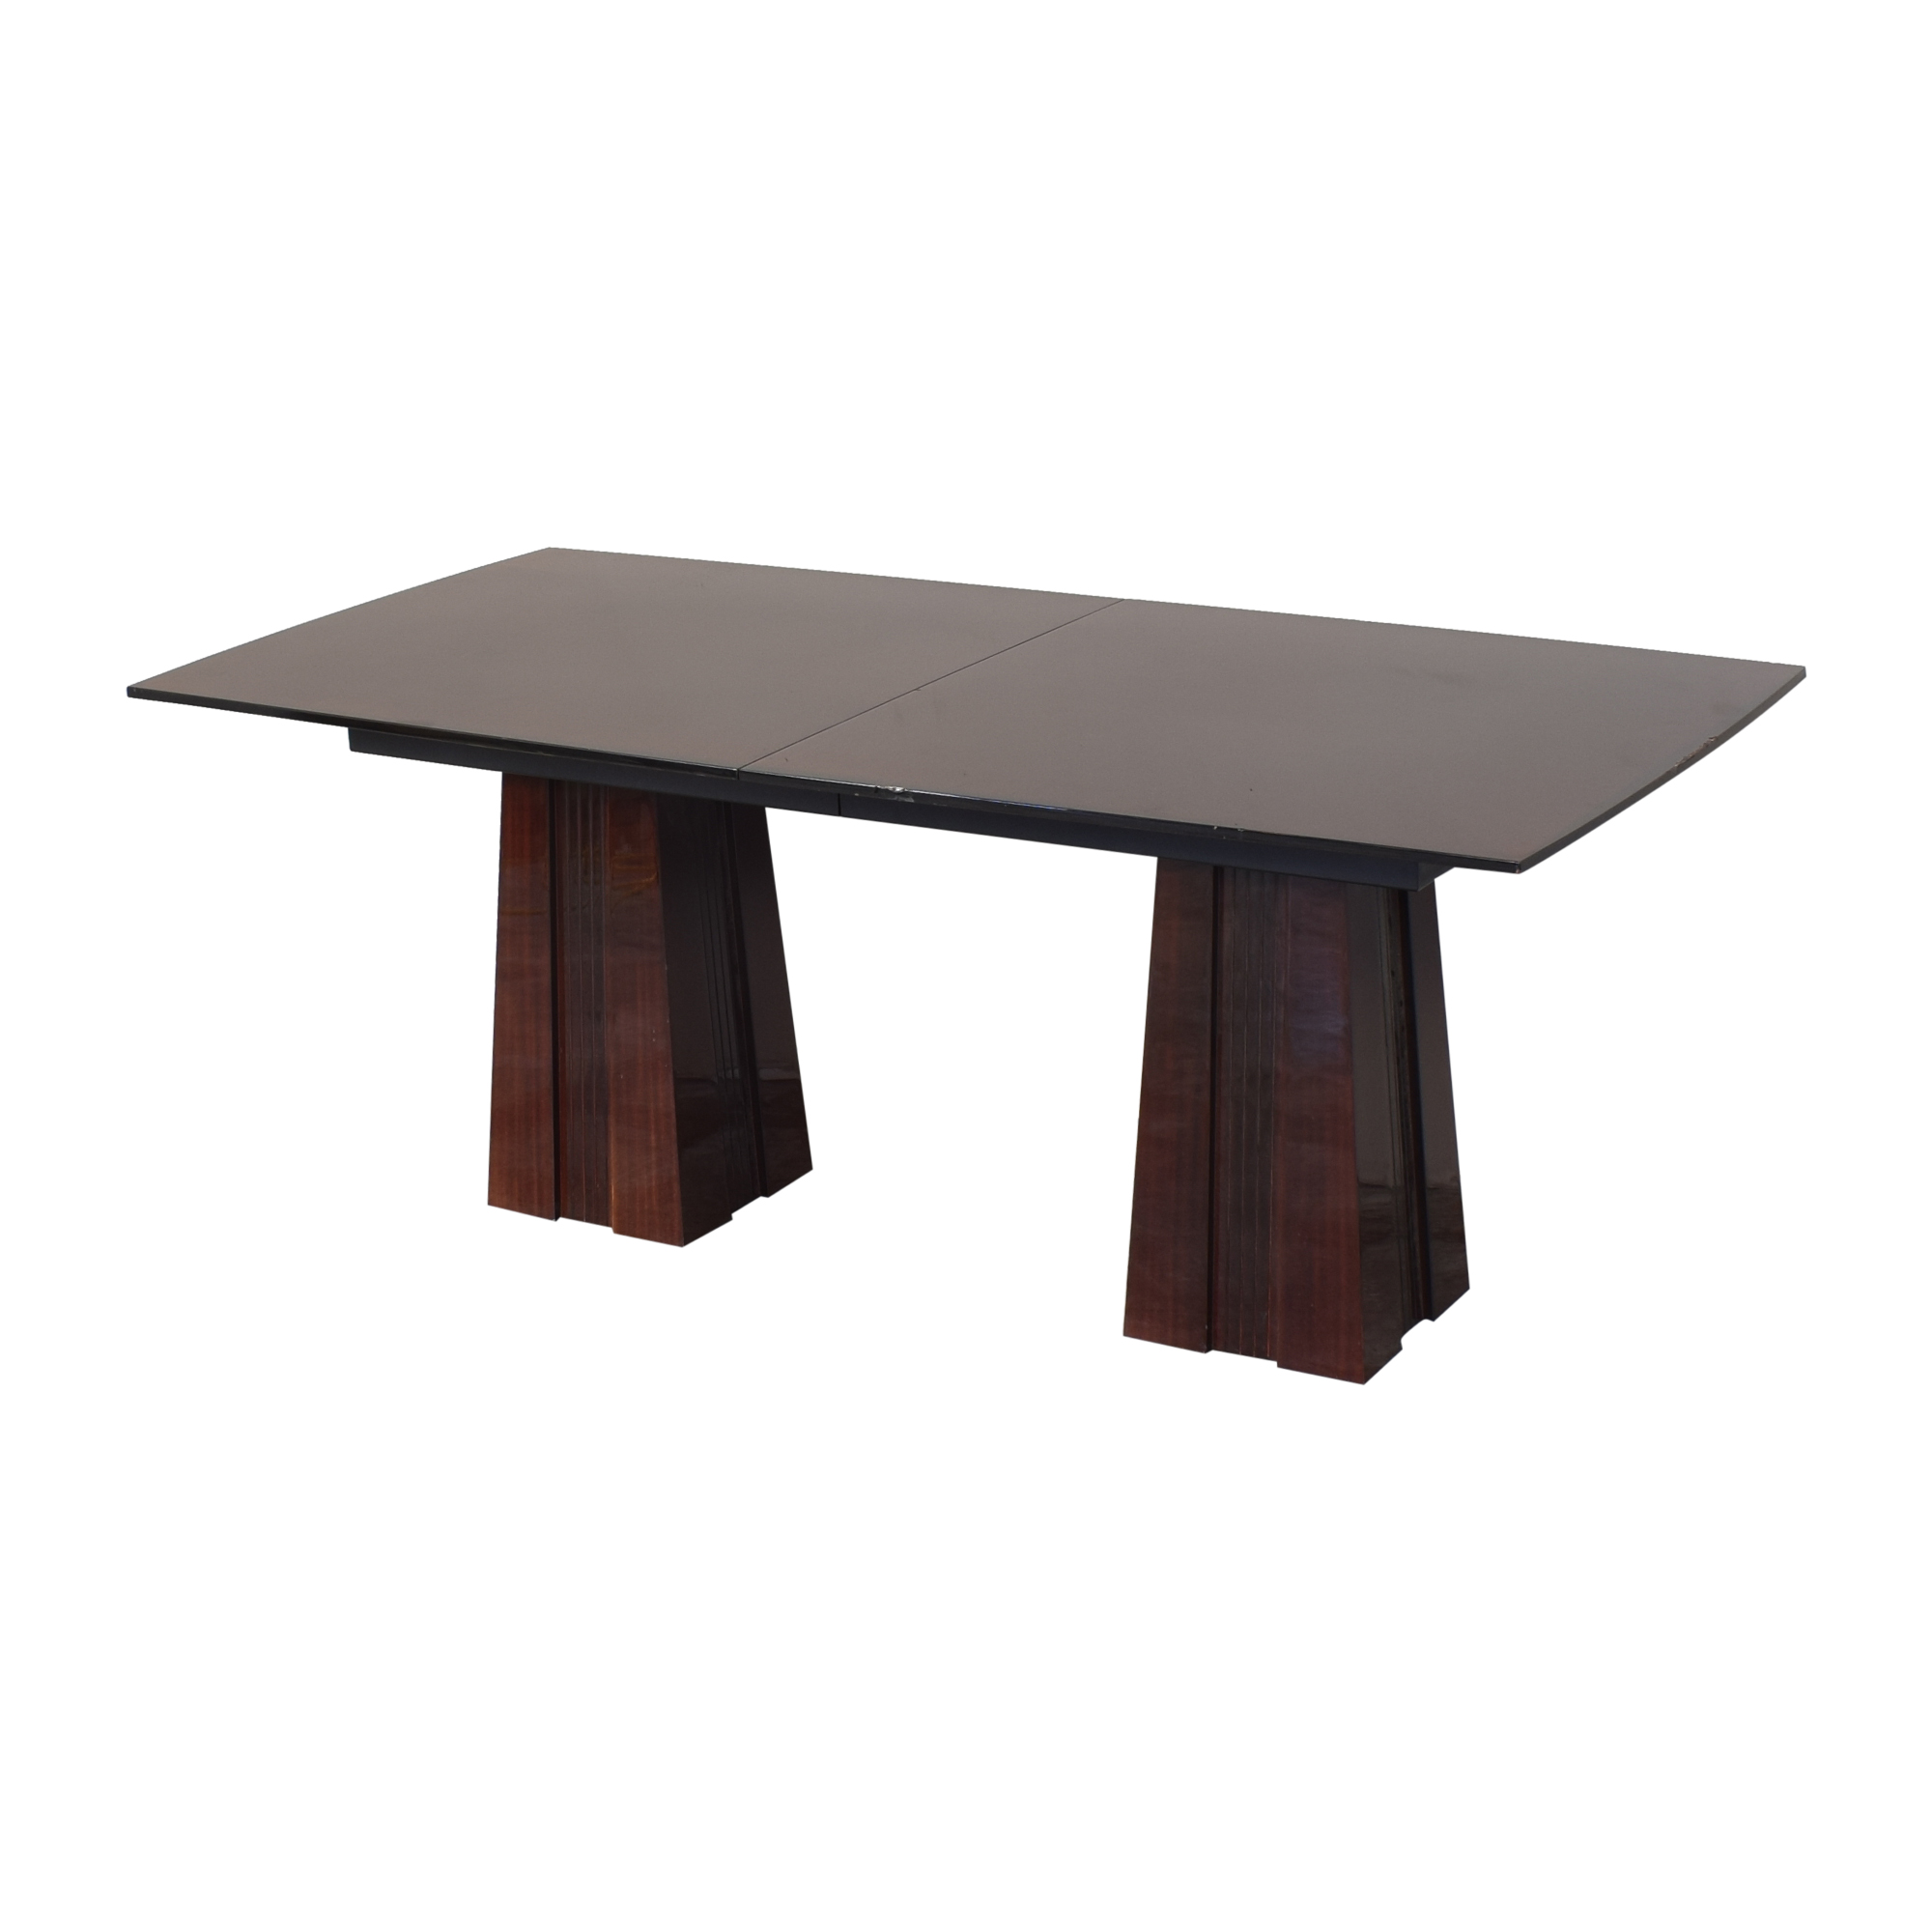 Dakota Jackson Dakota Jackson Ariel Collection Dining Table pa